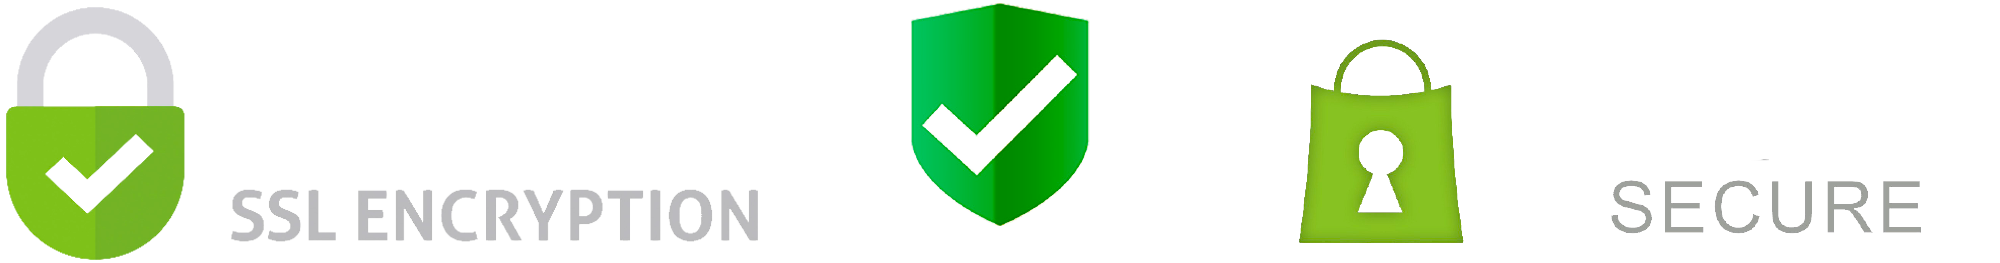 Shopify secure SSL Encryption AES 256bit badge